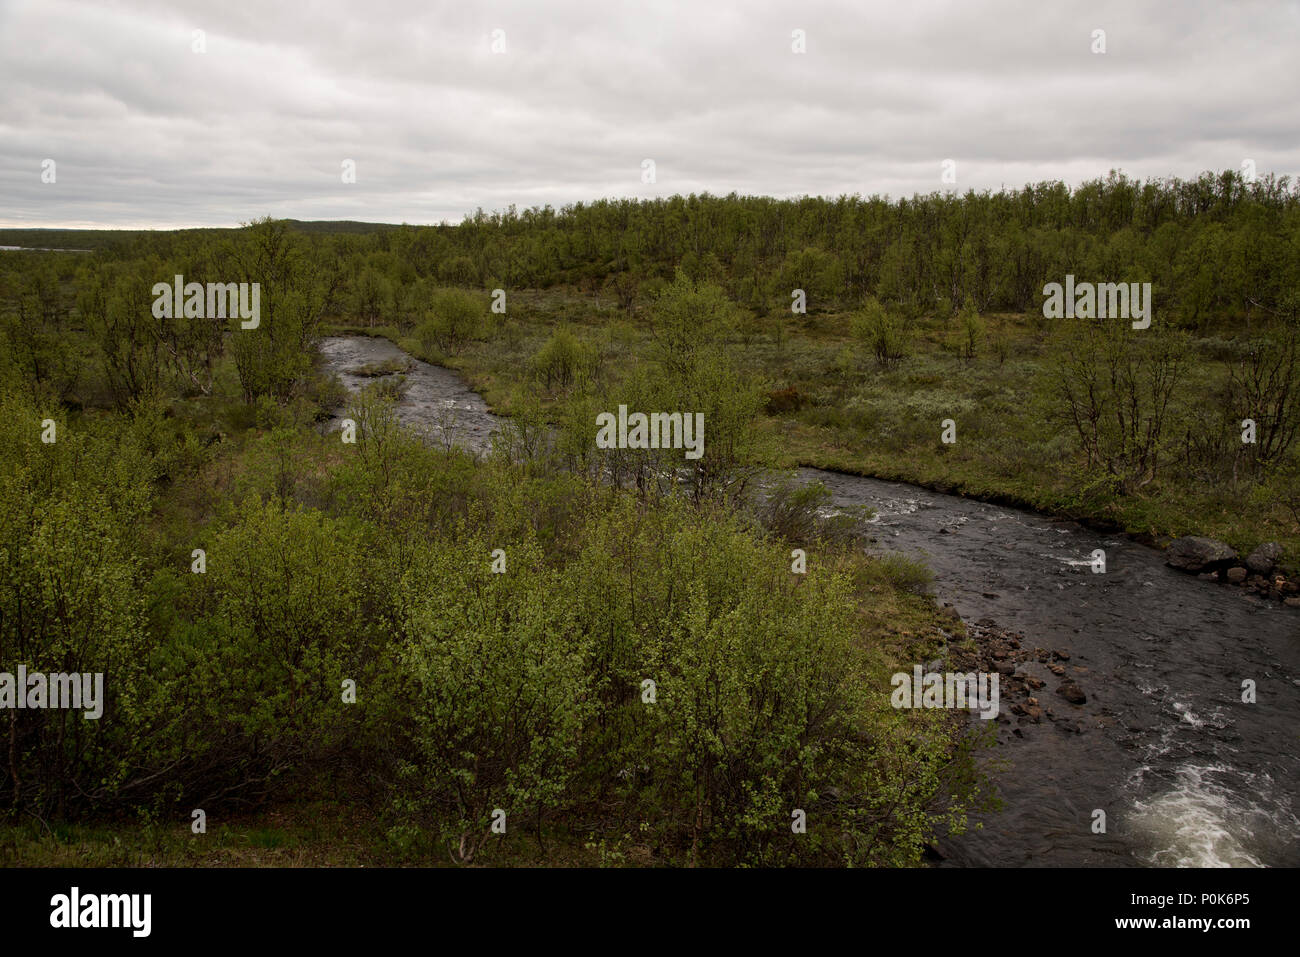 Downy Birches are covering parts of Norways northenmost province Finnmark. Stock Photo